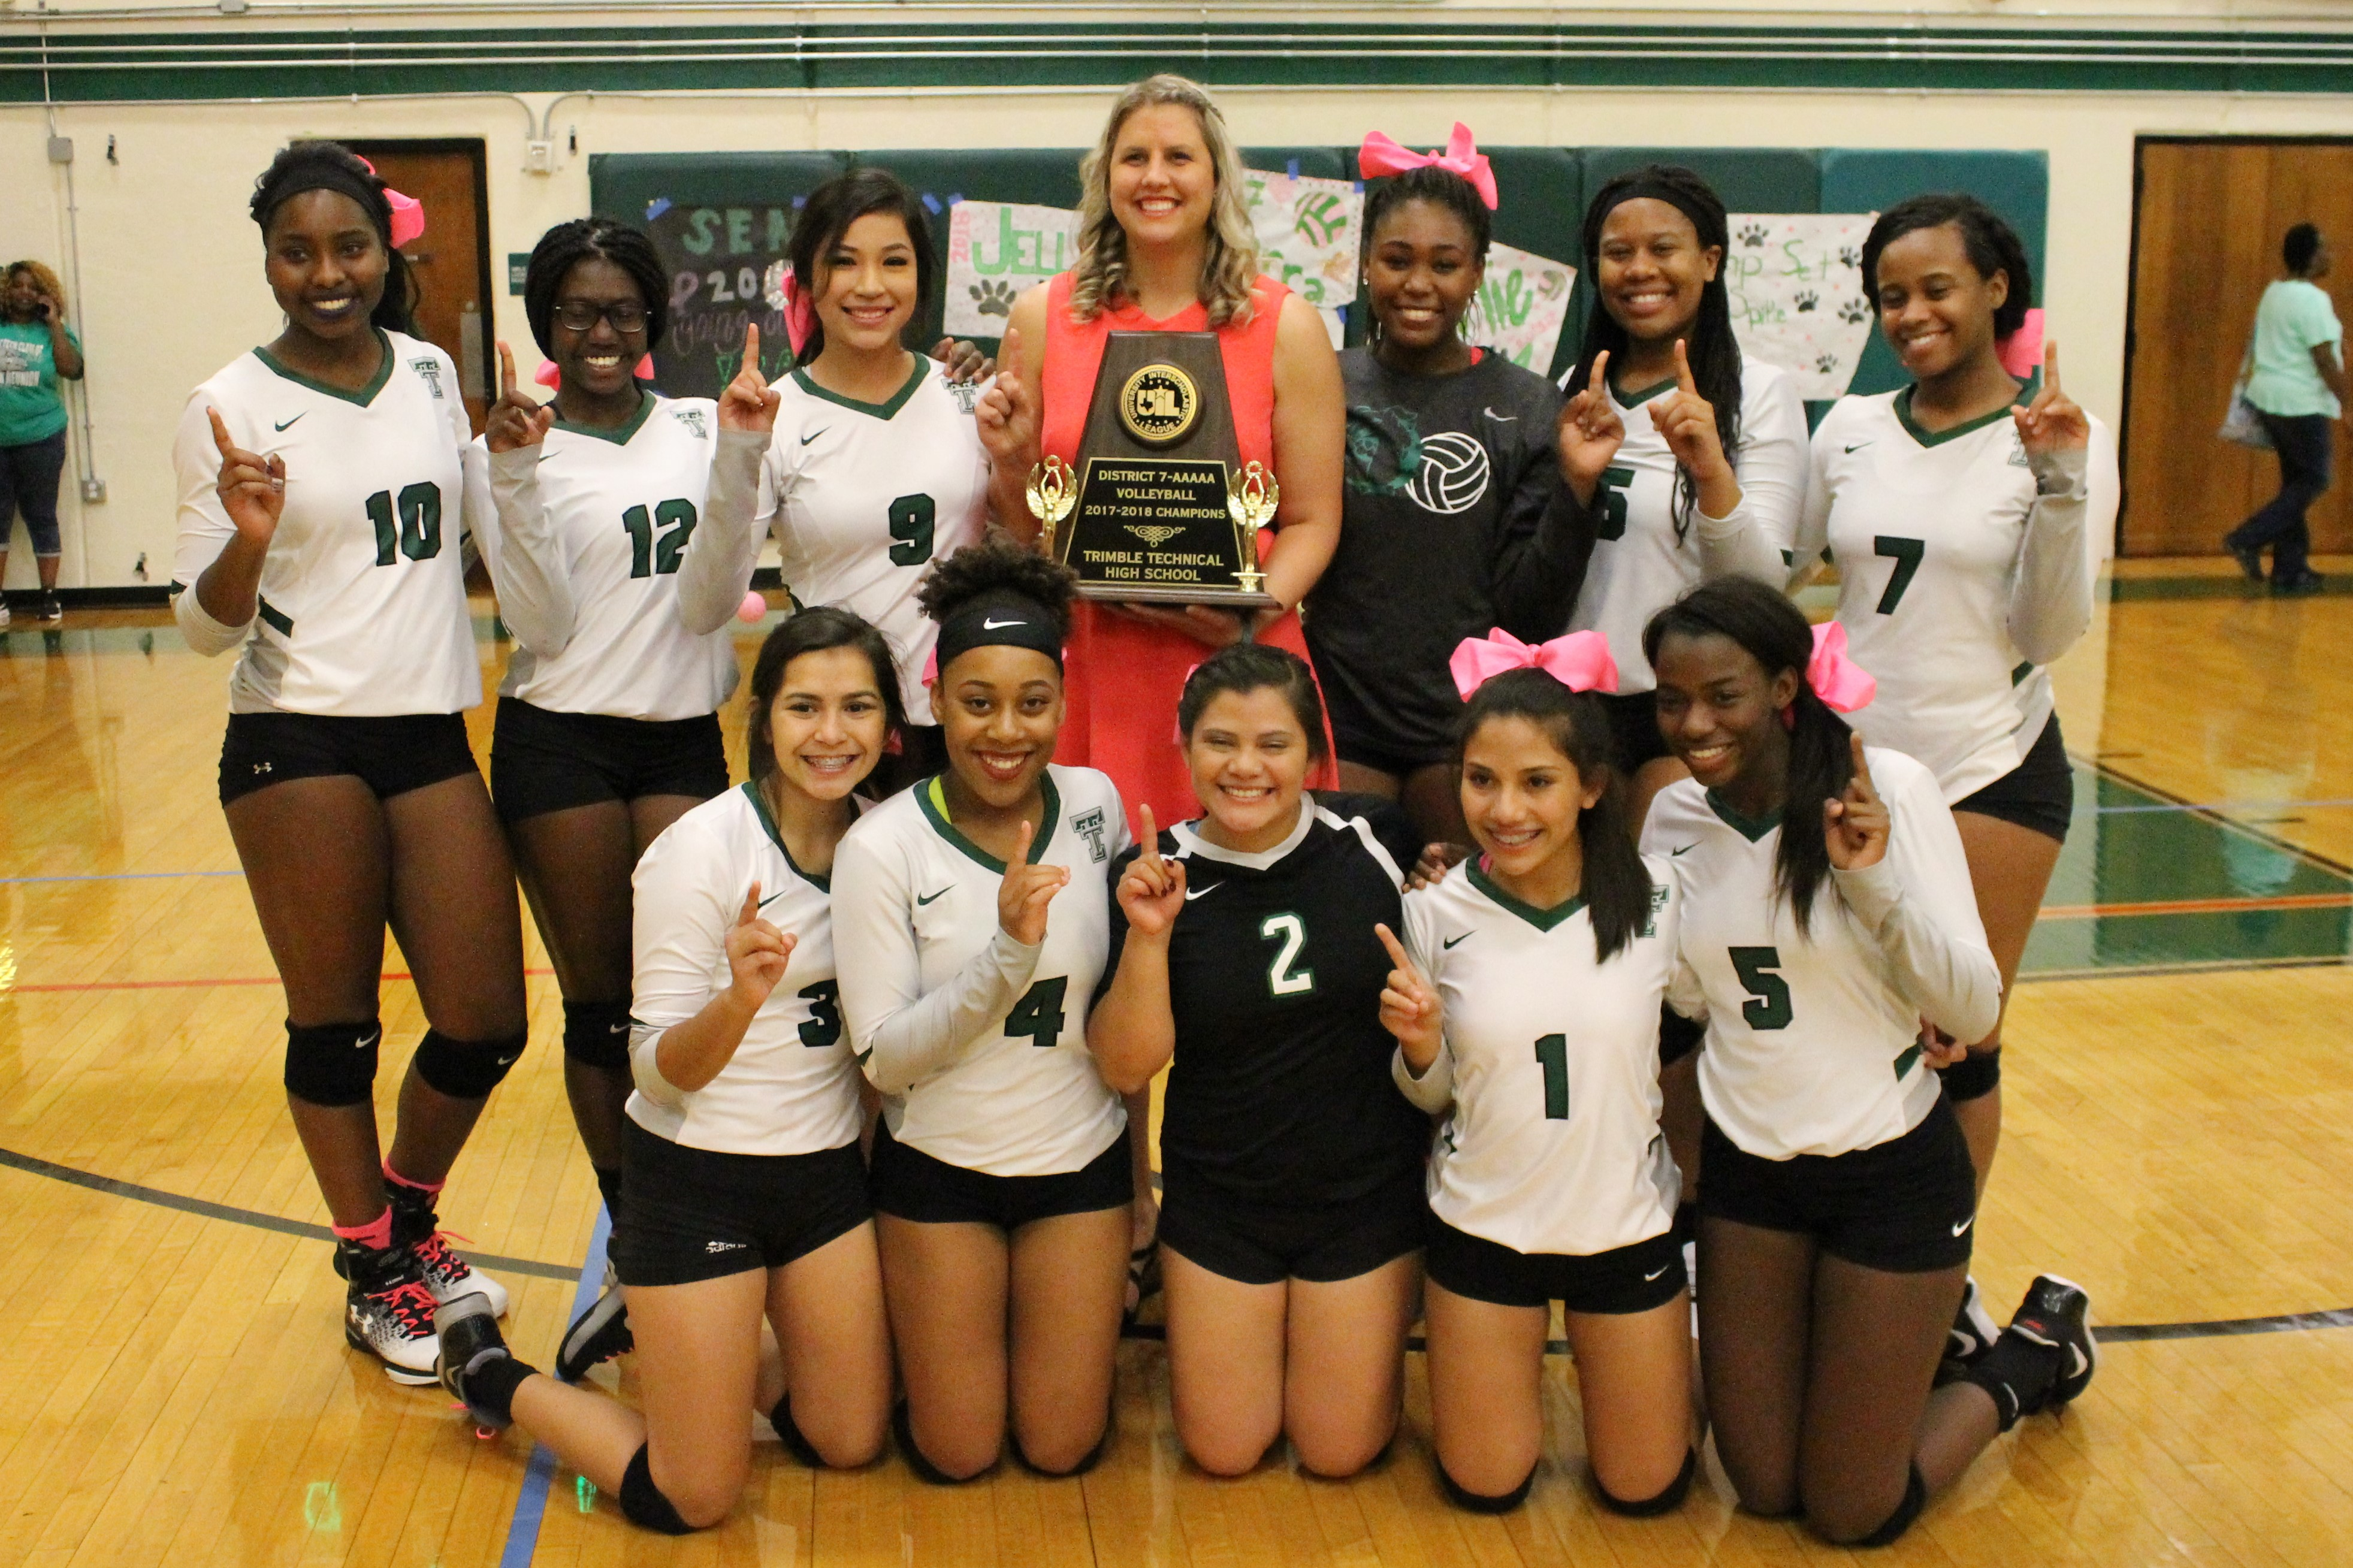 Trimble Tech's Volleyball Team is excited to make the jump to 6A for 2018, information about summer workouts and the 2018 schedule already released. Please check on the information and come ready to take it to 6A!